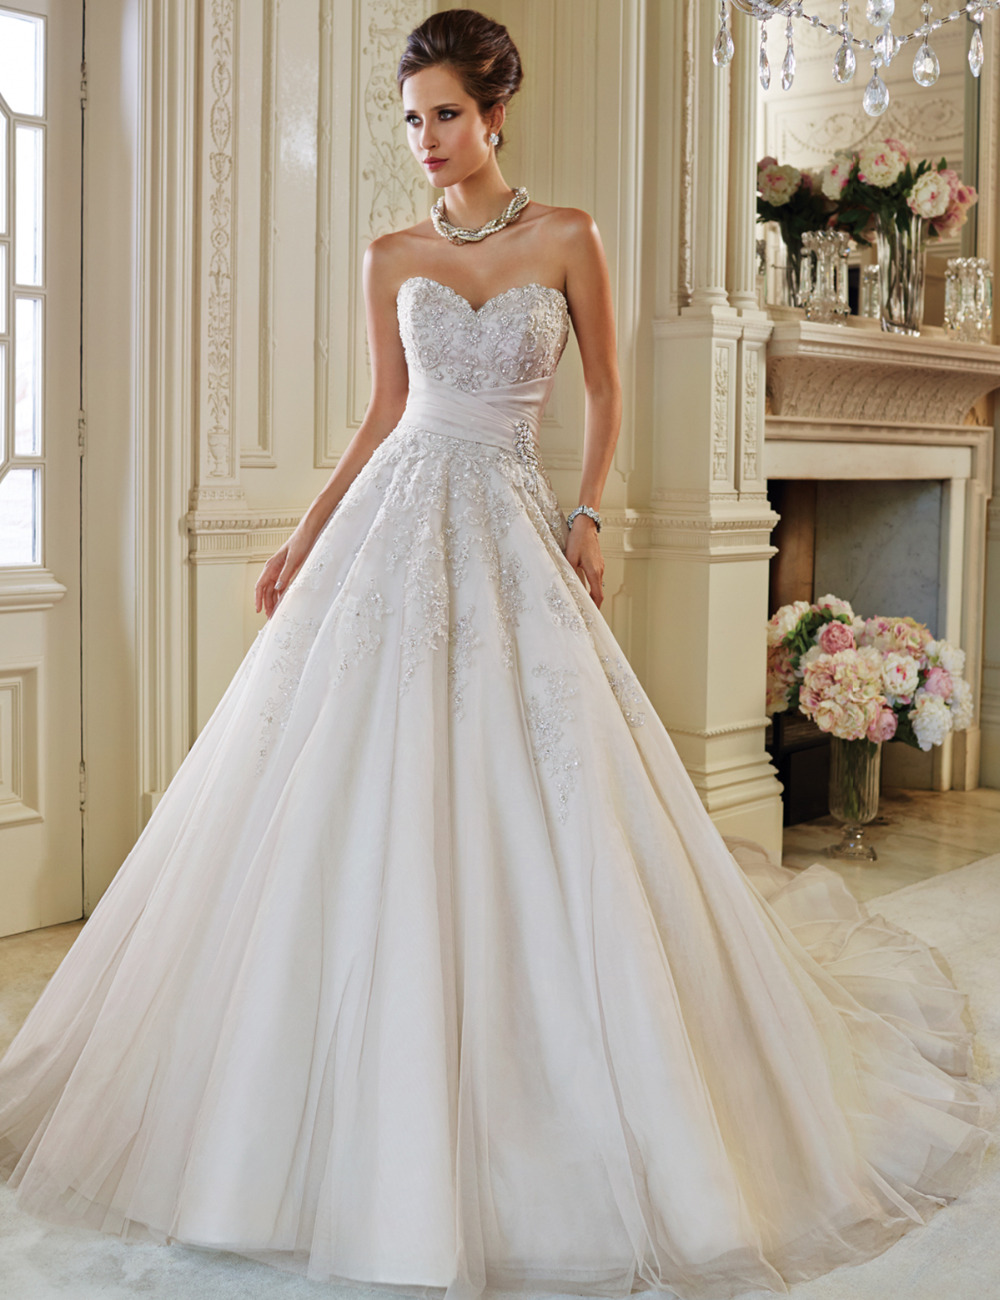 Compare prices on sleeveless lace top wedding dress online princess a line wedding dresses bling top beaded sweetheart gorgeous bride dress for wedding l212 ombrellifo Gallery